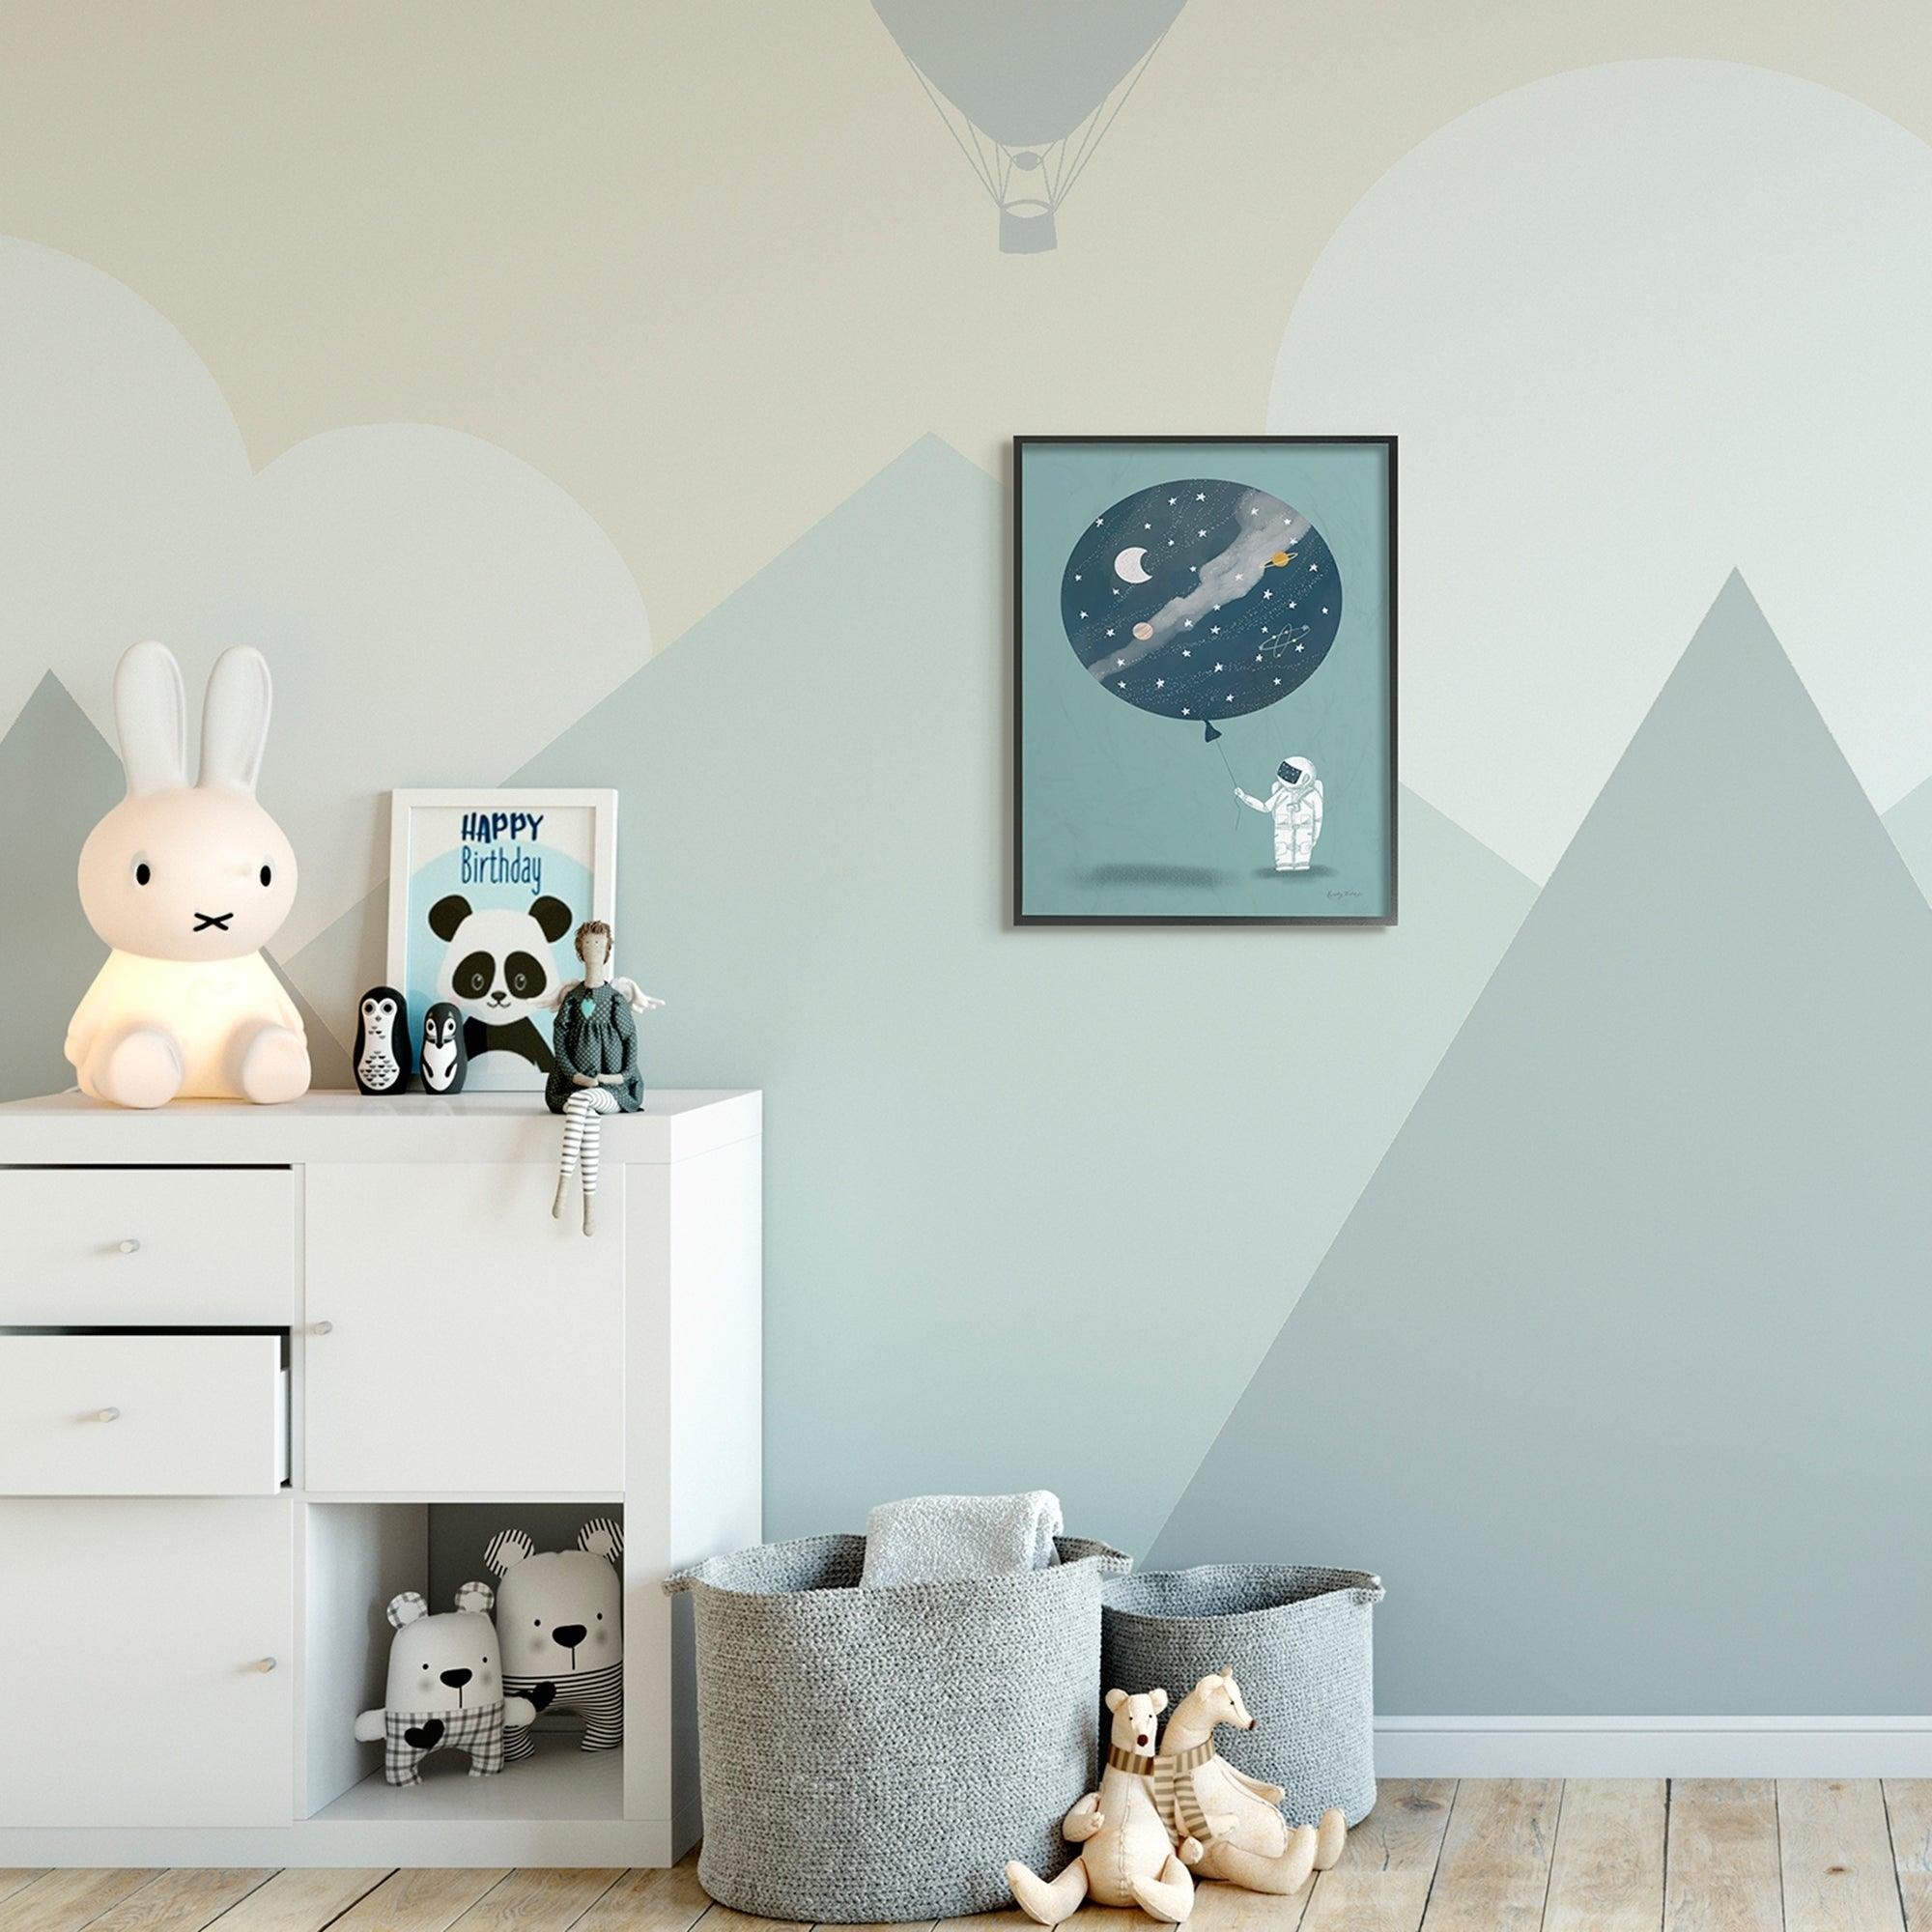 The Kids Room by Stupell Kids Space Astronaut Blue Drawing Design 11x14 Proudly Made in USA bfc65f3a 27ba 4ddc 9922 c0c4070ab8b5